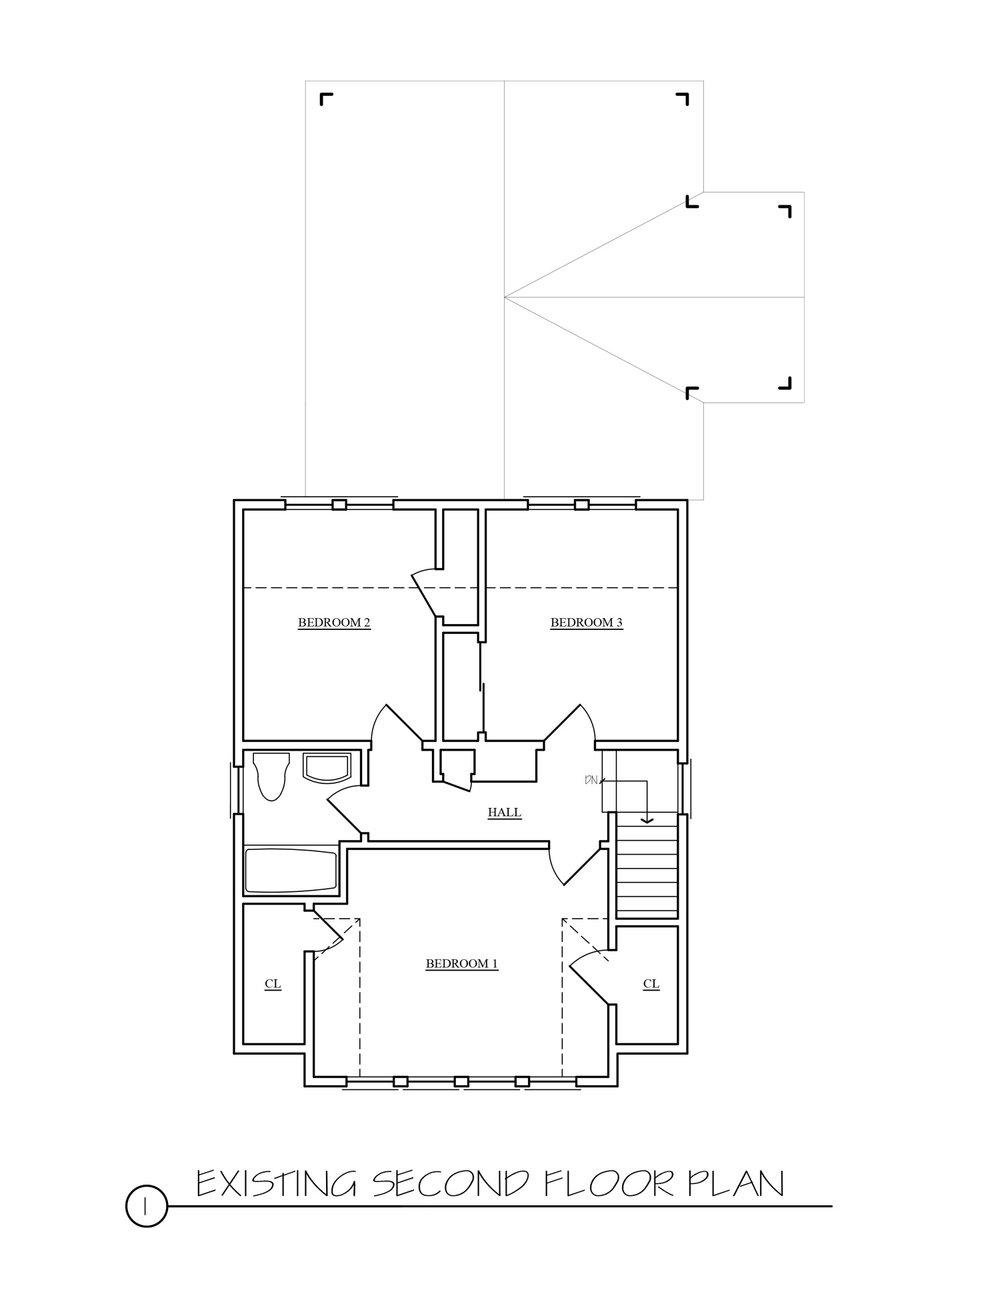 3_Existing-Second-Floor-Plan.jpg